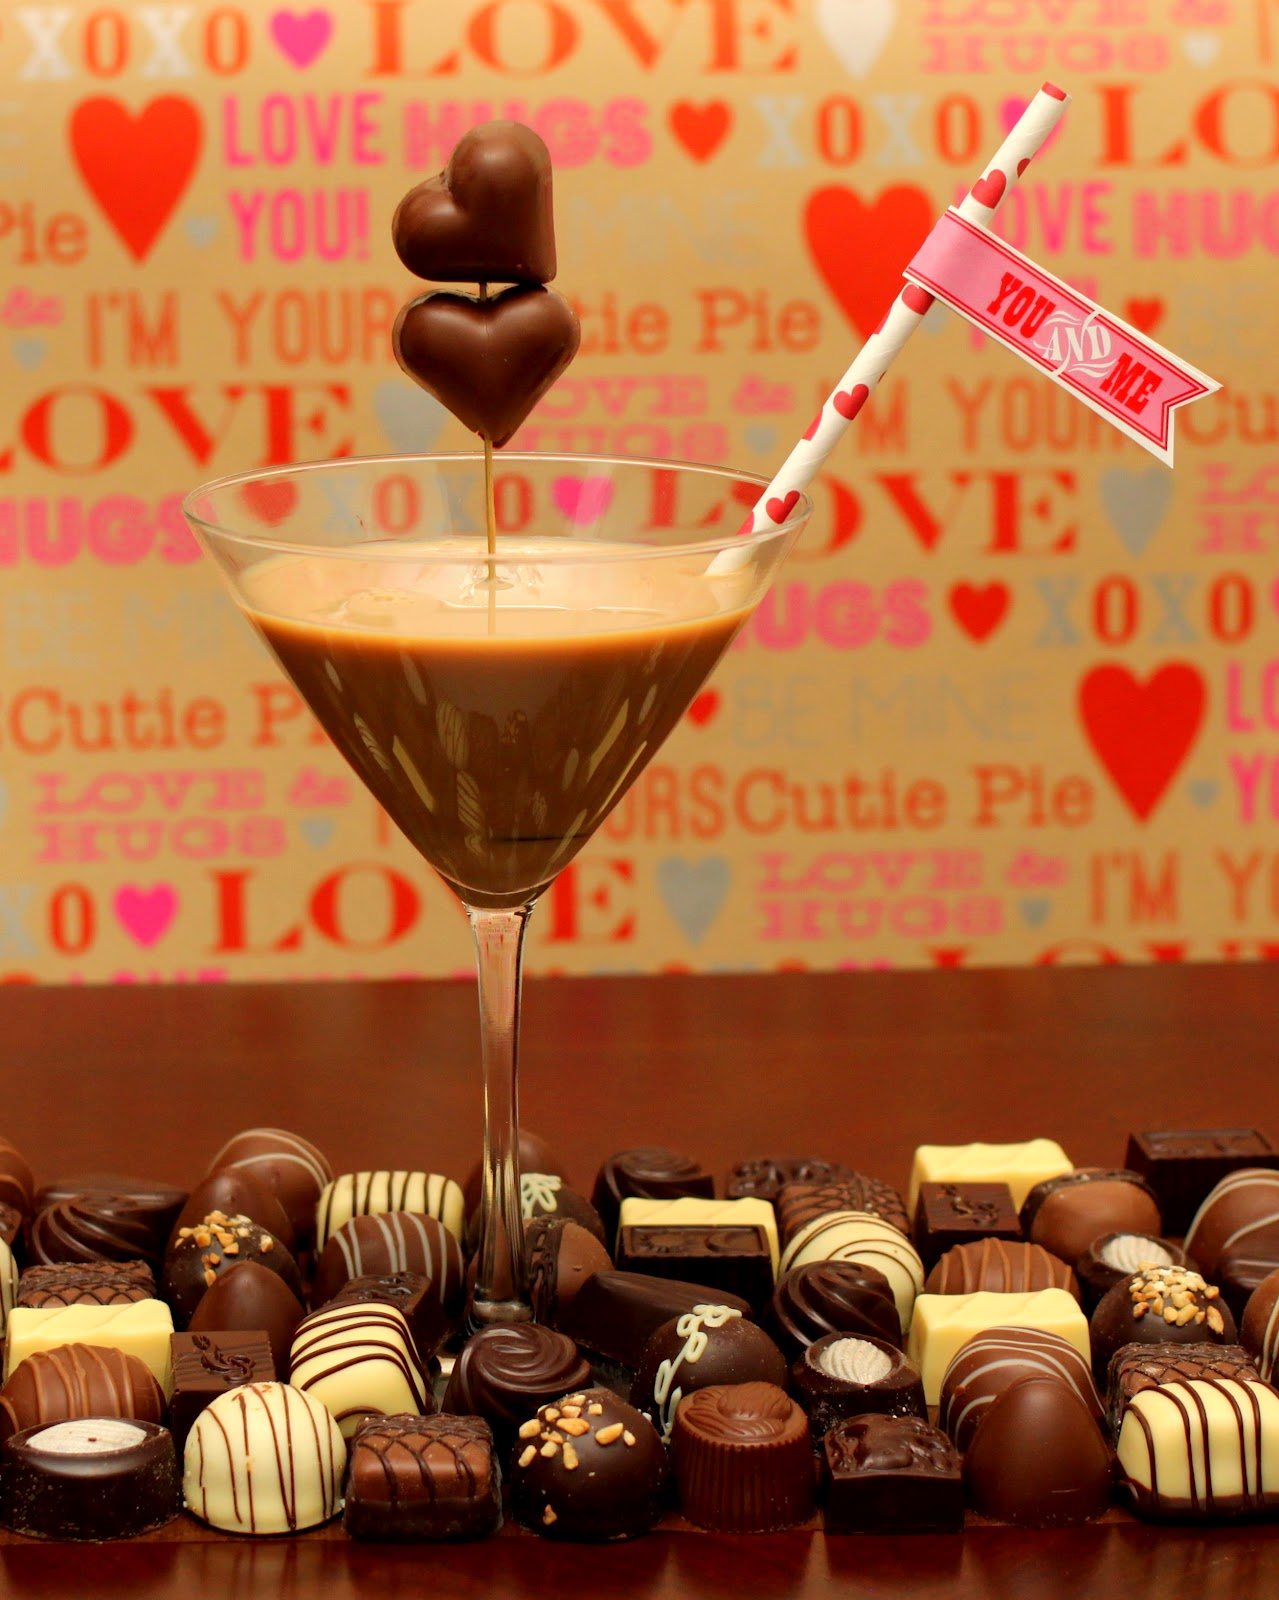 doo-dah!: A Chocolaty Cocktail For Valentine's Day